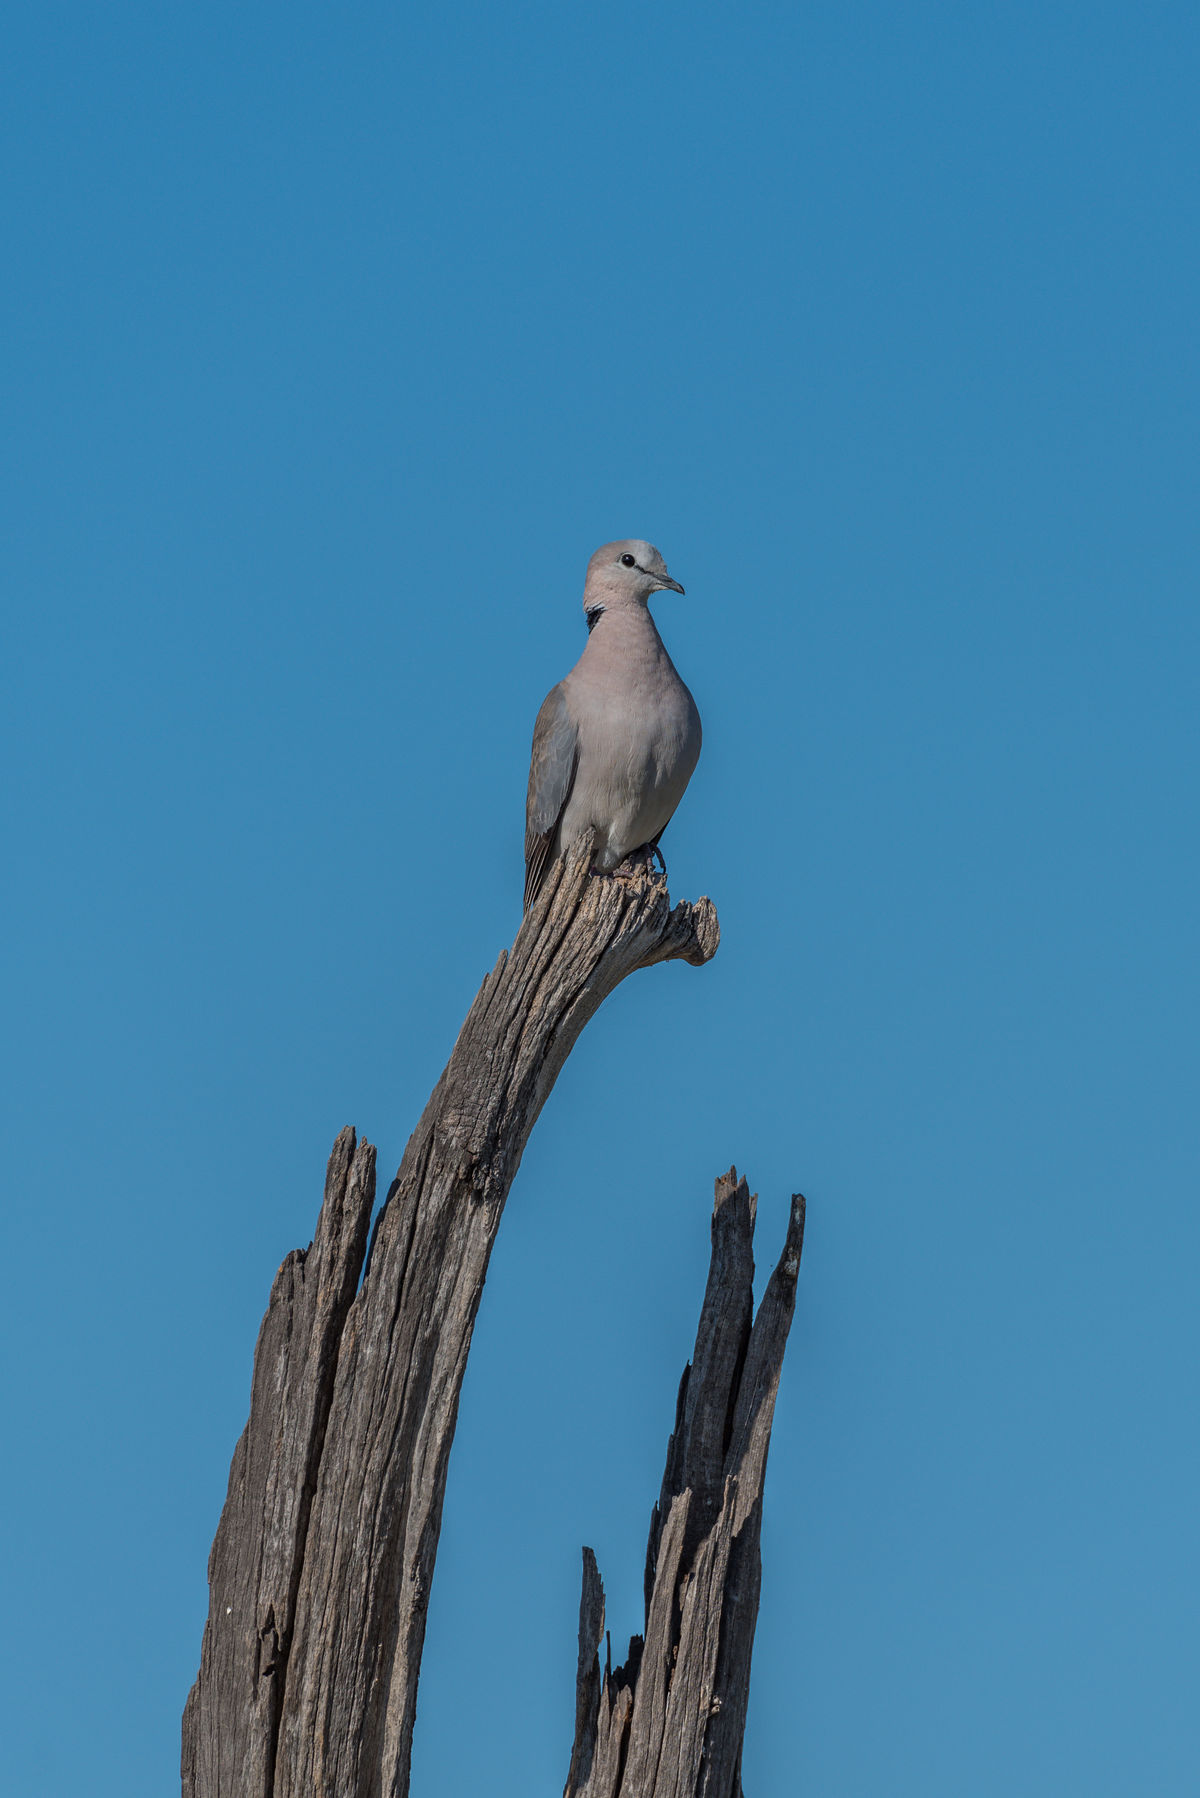 Animal Animal Head  Animal Themes Avian Beauty In Nature Bird Of Prey Blue Cape Turtle Dove Clear Sky Close-up Day Low Angle View Mammal Nature No People Outdoors Perching Sky Wildlife Wooden Post